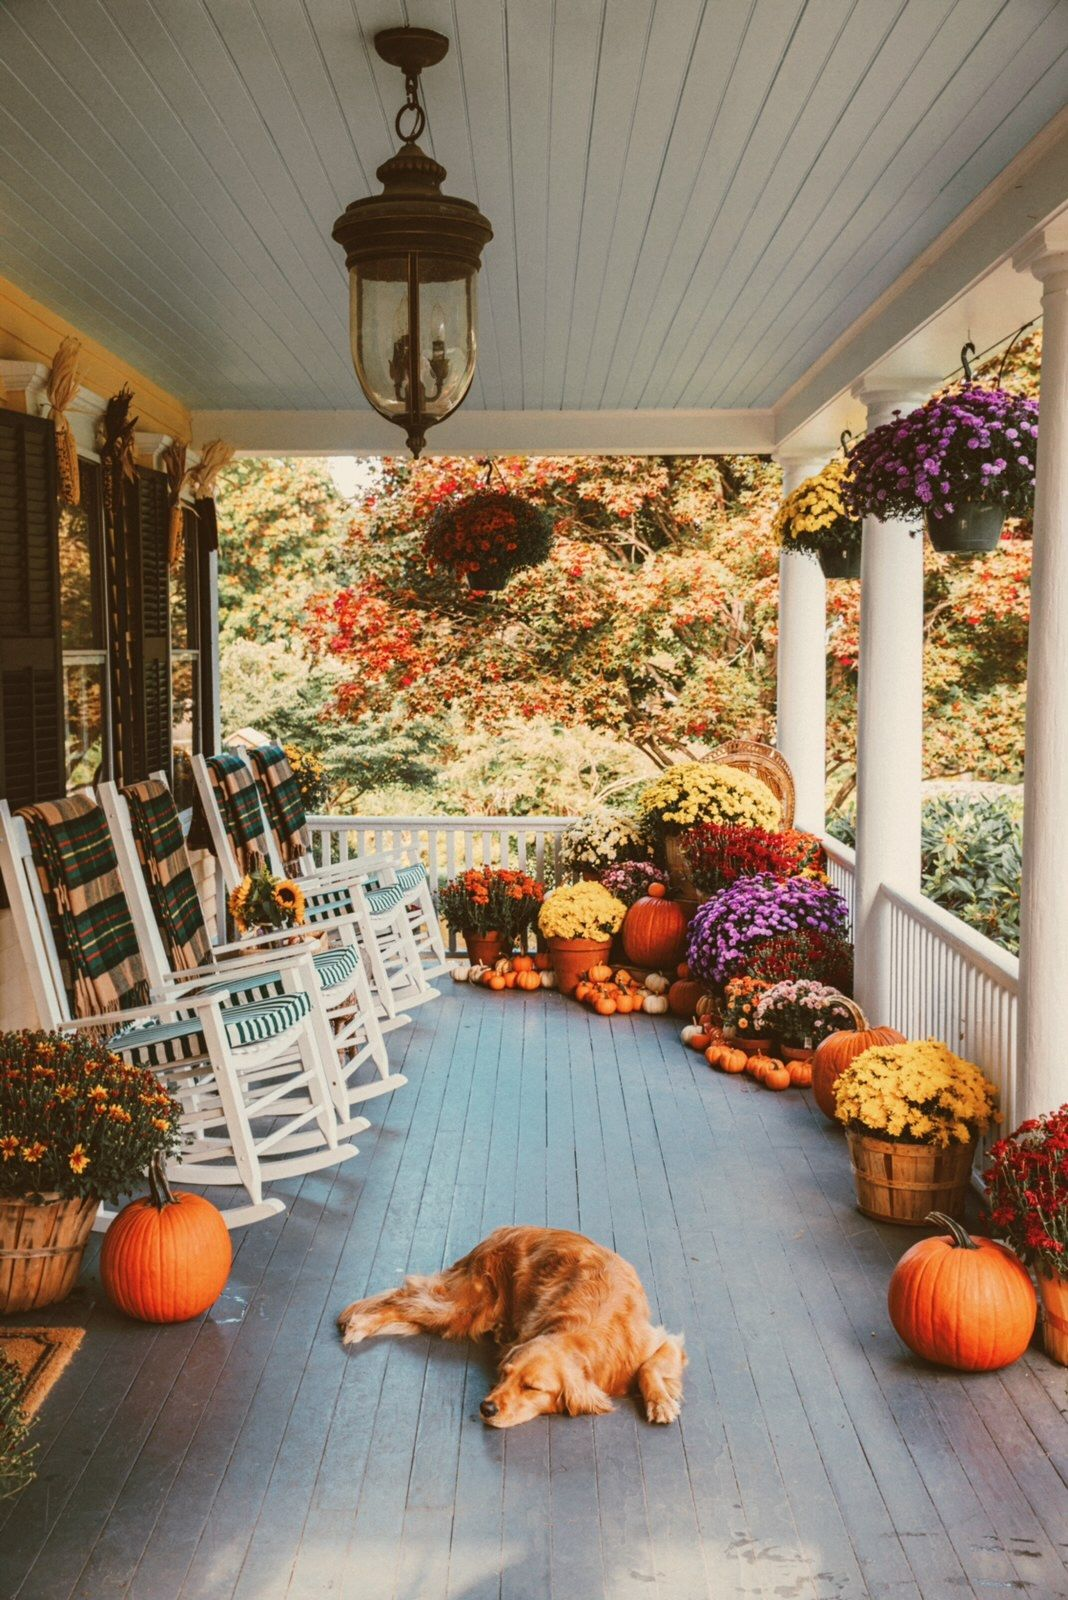 Fall Porch Decorating With Sunbrella Classy Girls Wear Pearls In 2020 Fall Decorations Porch Fall Porch Porch Decorating